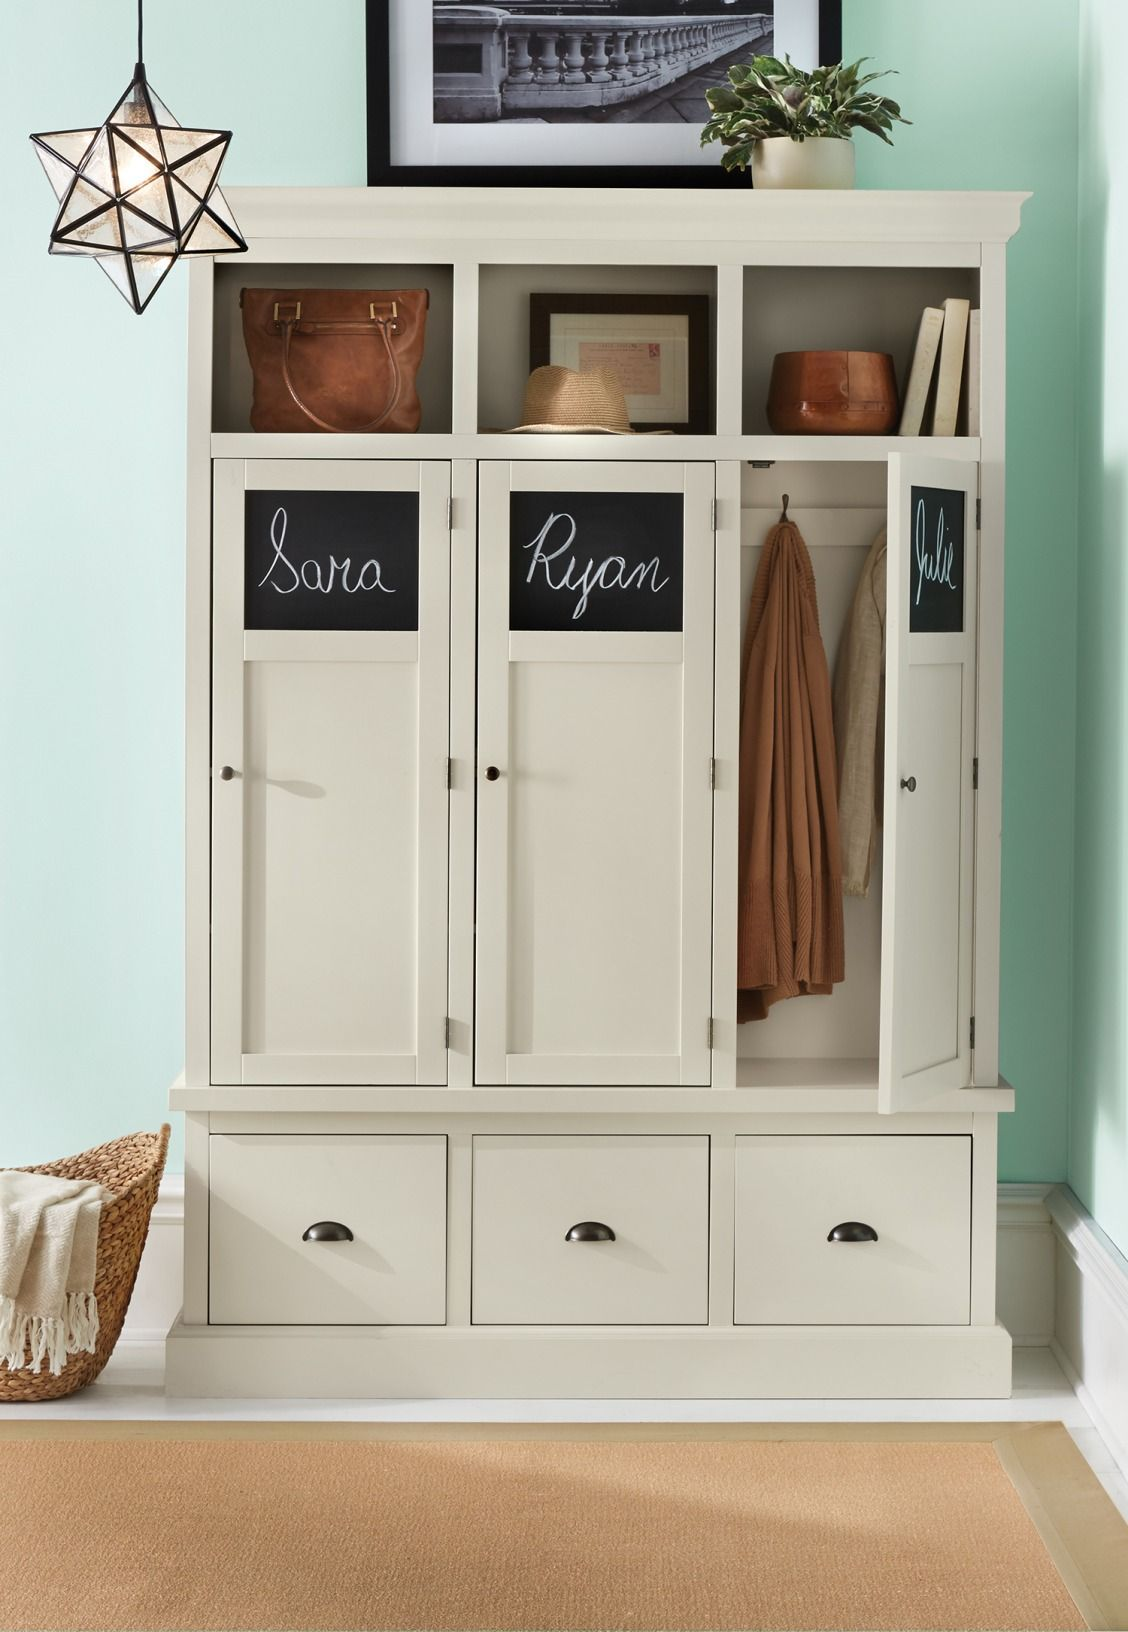 Home Decorators Collection Shelton Wood Storage Locker In Polar White  Tackles Your Mudroom Or Entryway Clutter With Ease And Style.